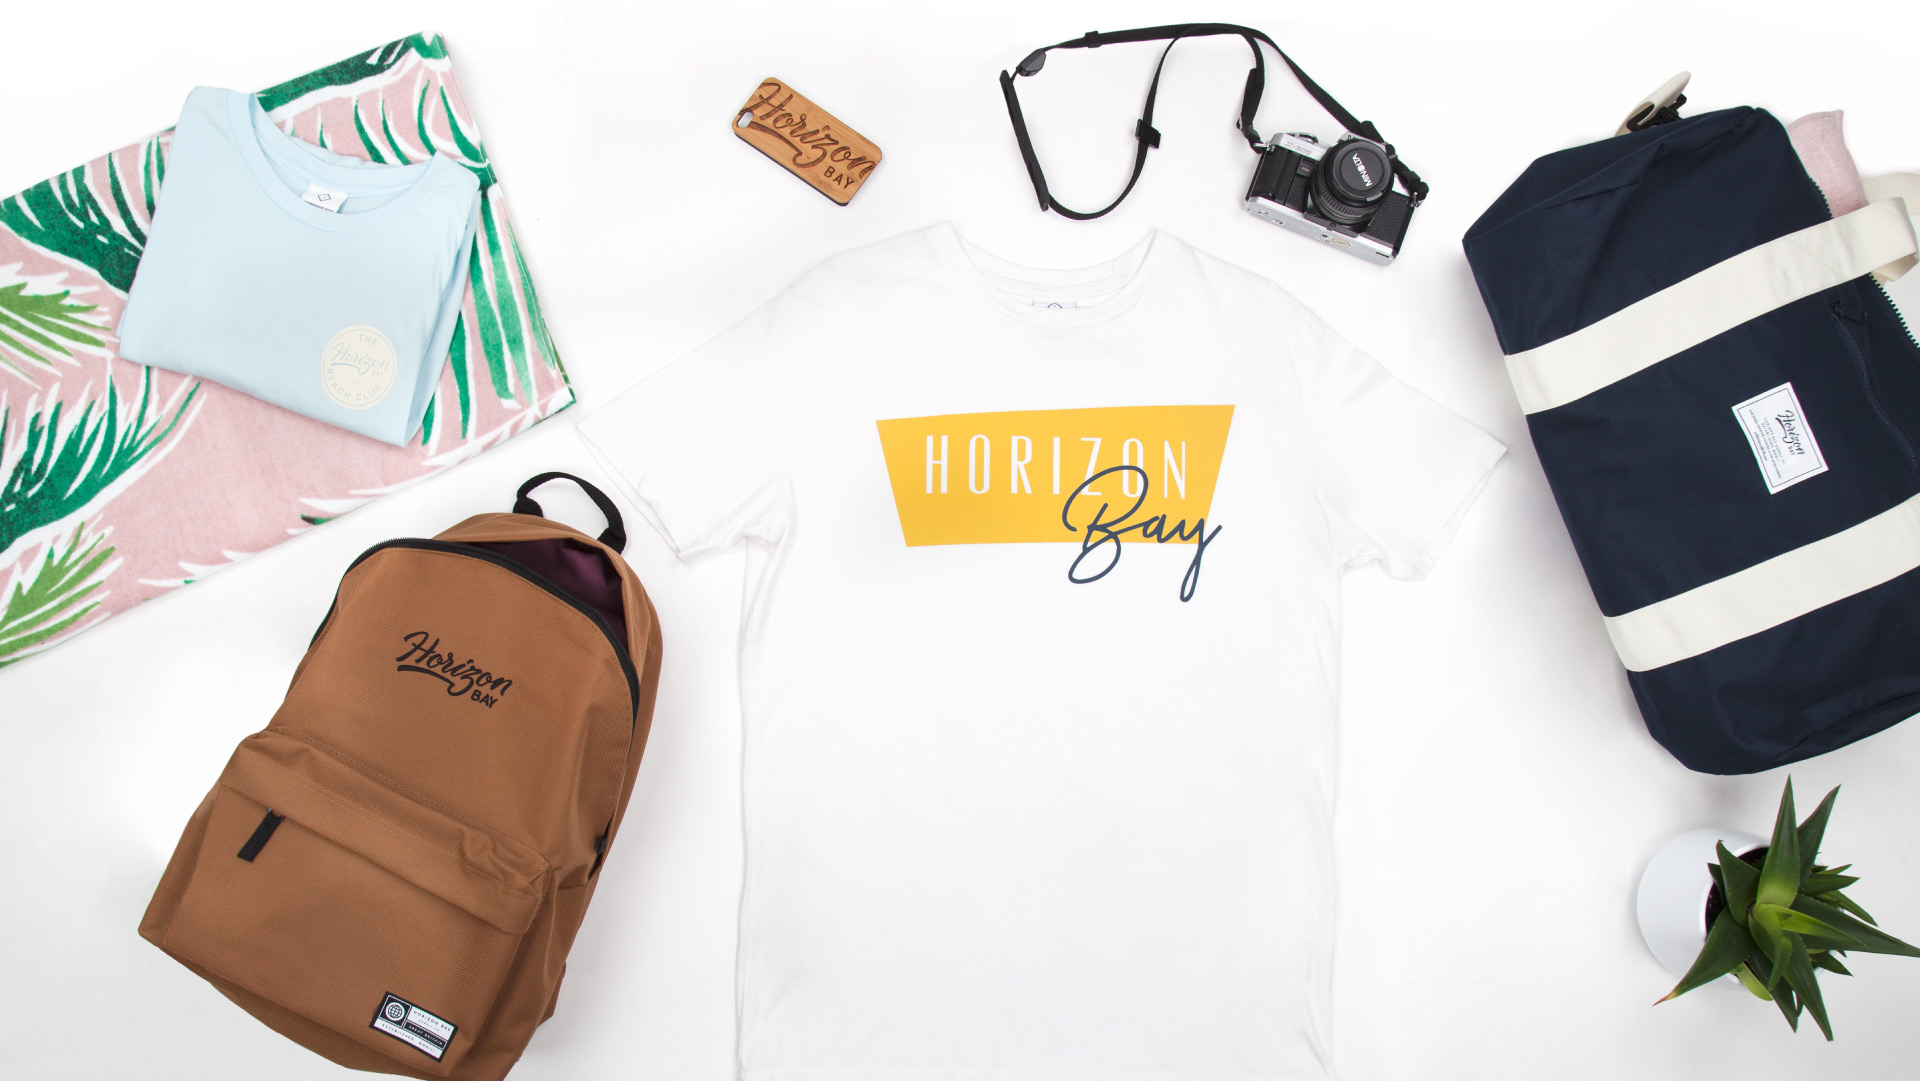 Horizon Bay Flat Lay